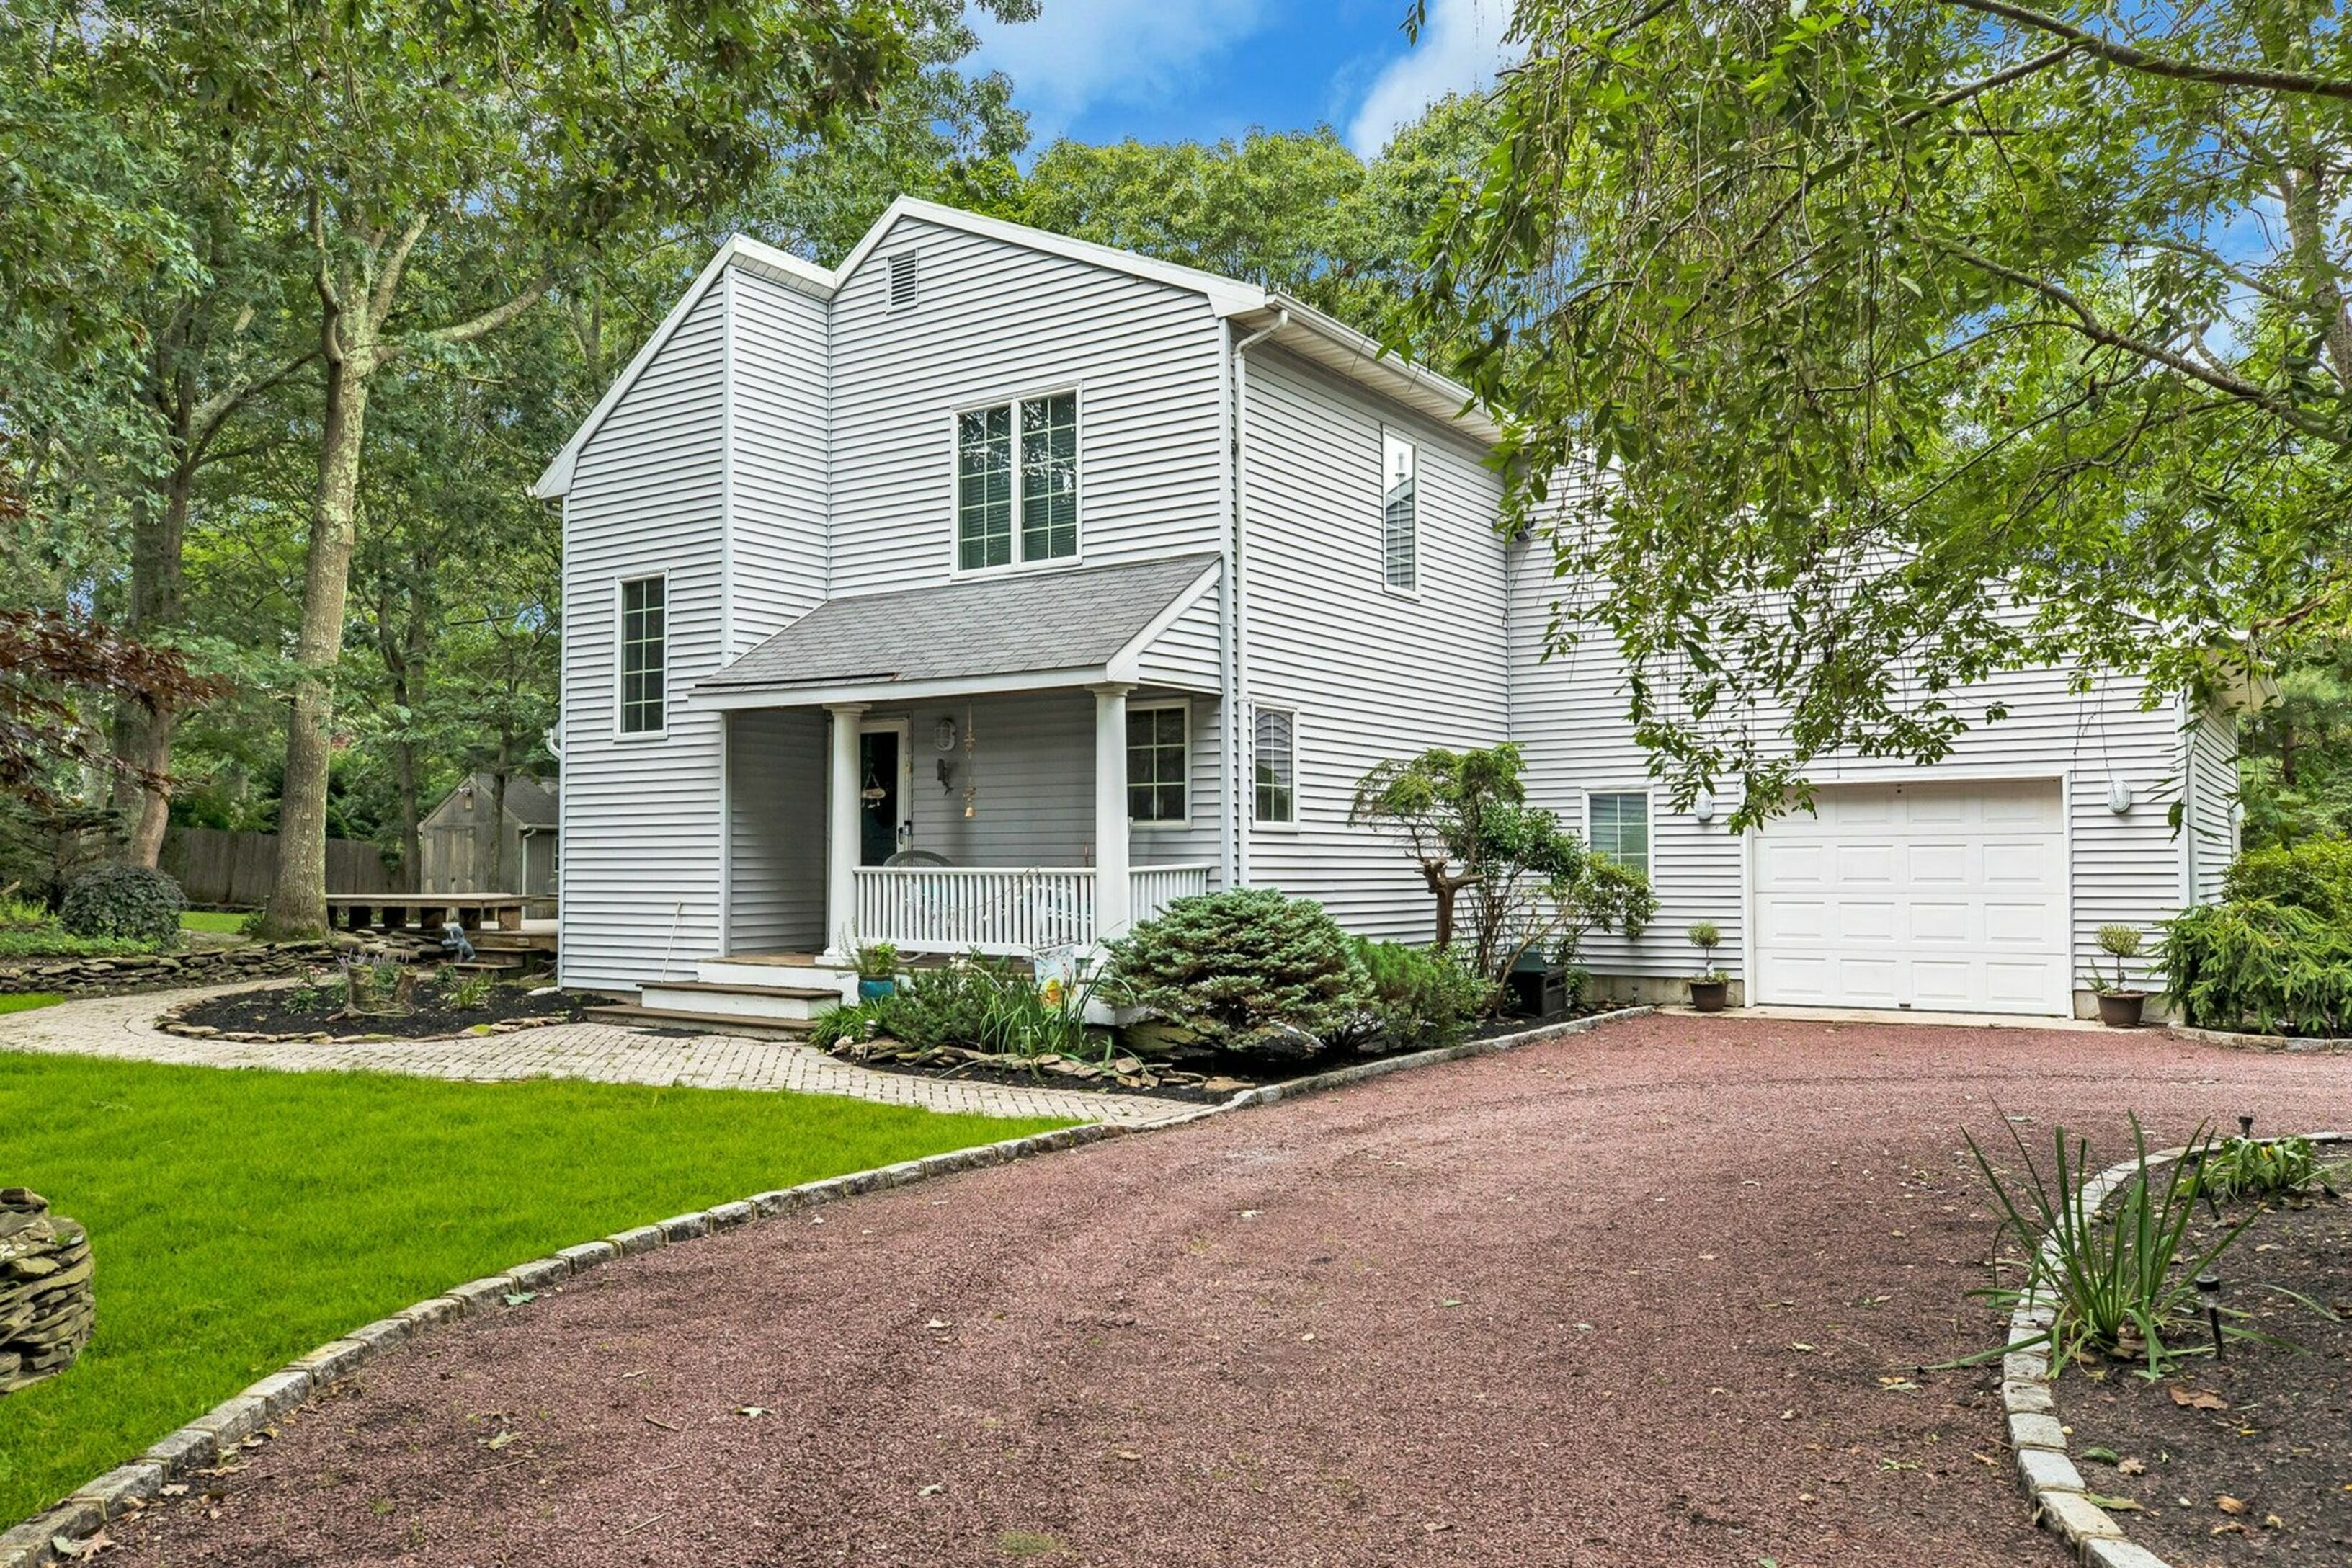 22 West Tiana Rd - Hampton Bays, New York